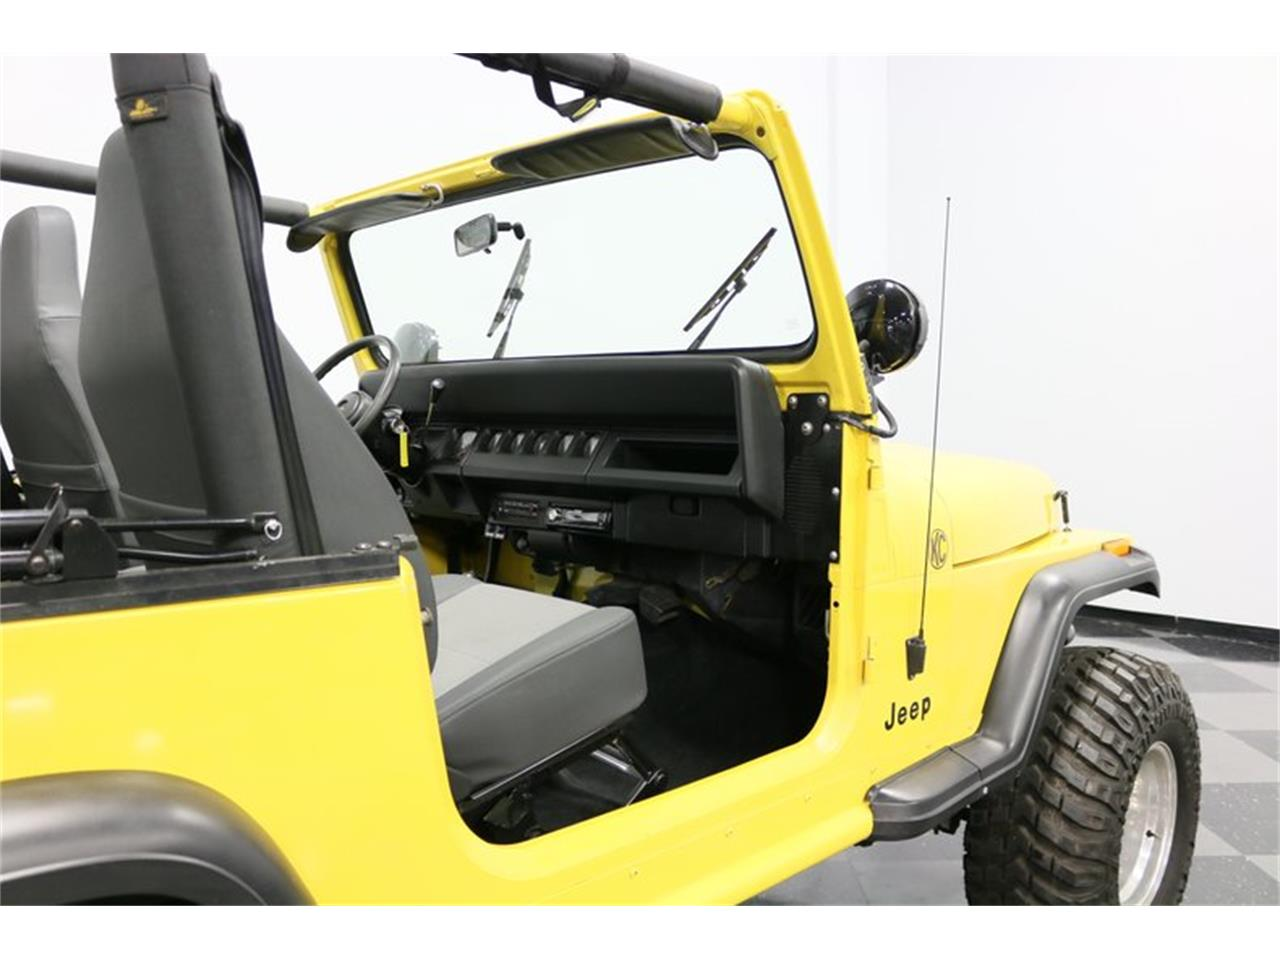 Large Picture of '93 Wrangler - $21,995.00 Offered by Streetside Classics - Dallas / Fort Worth - P701